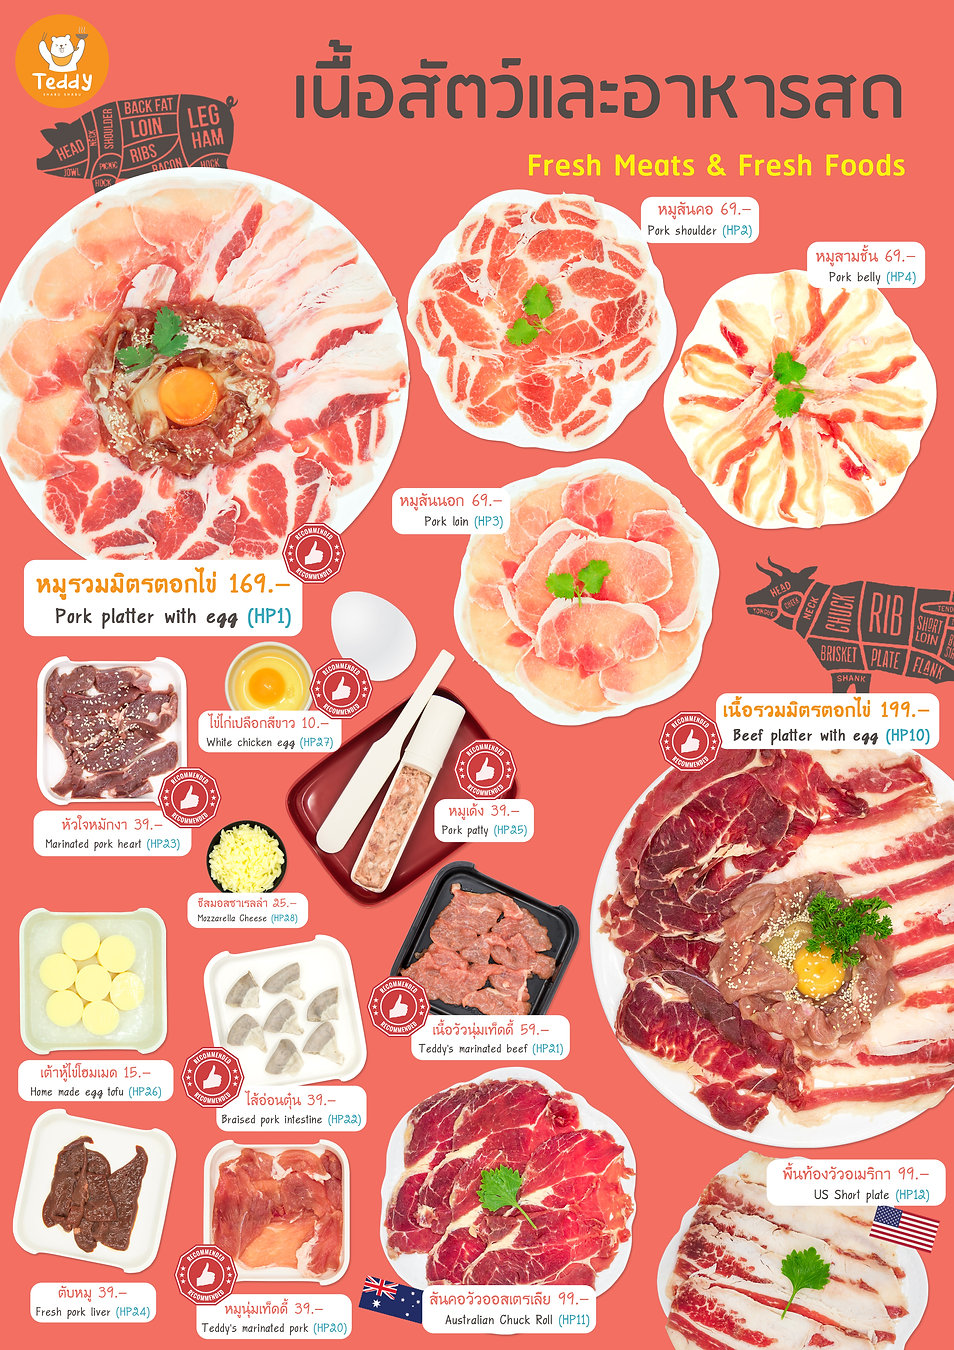 05-Fresh Meats and Fresh Foods.JPG